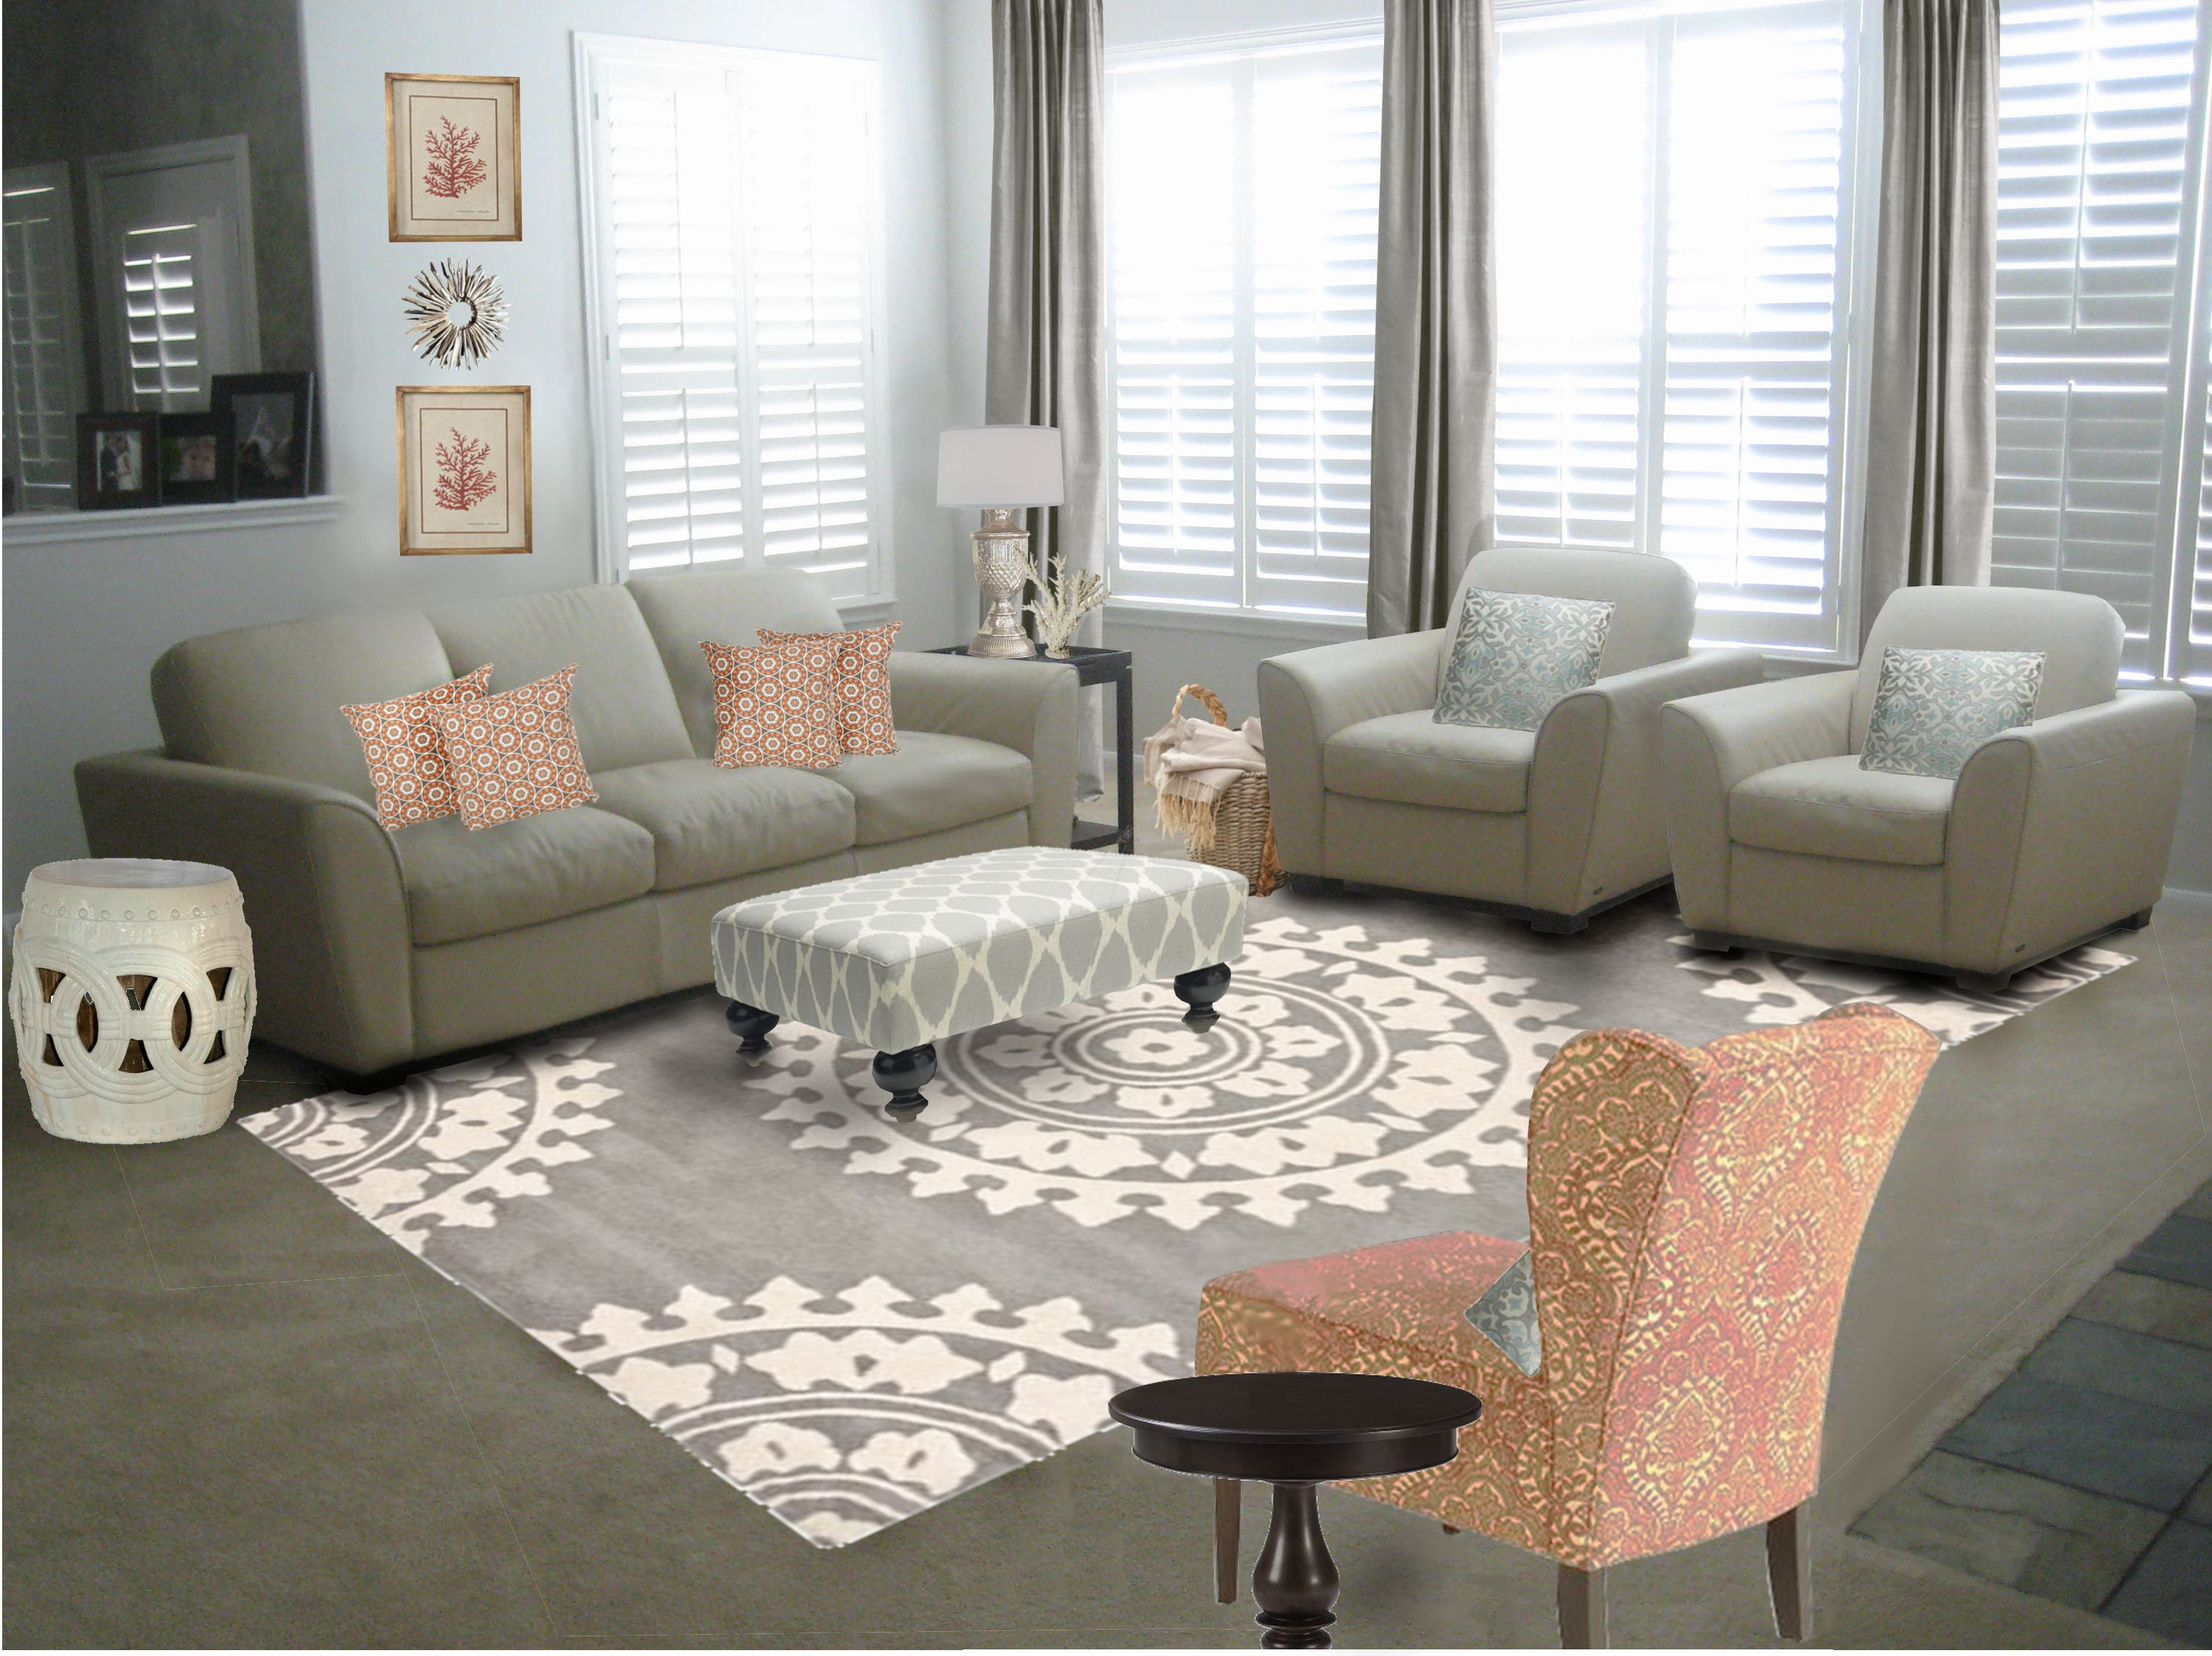 The living room blue painting colors schemes gray sofa plus metal